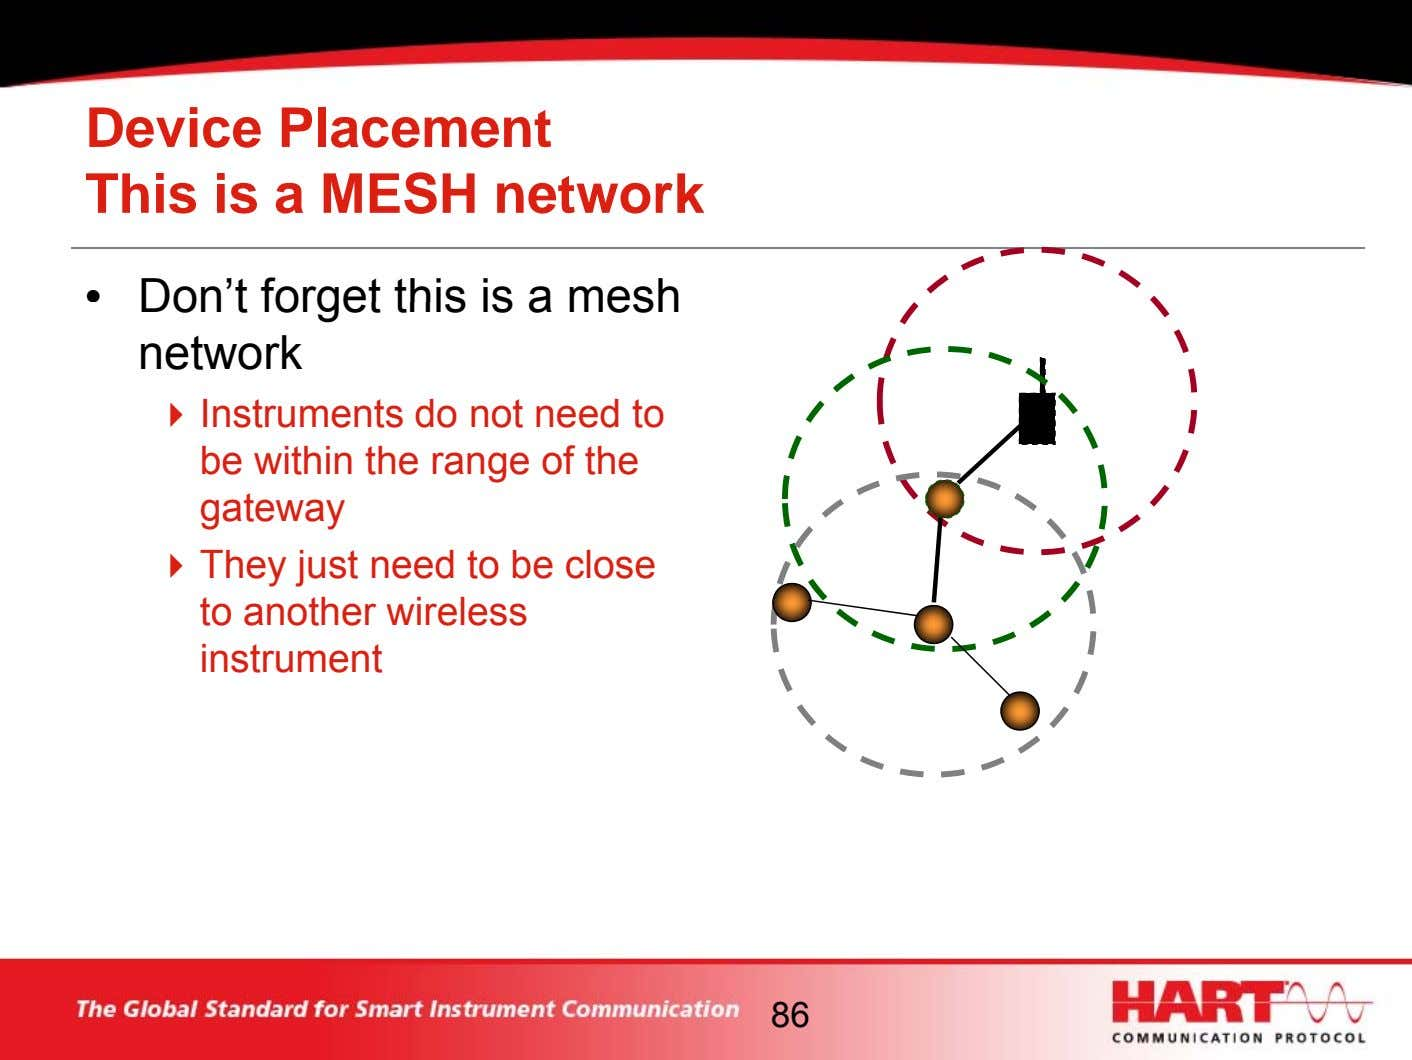 Device Placement This is a MESH network • Don't forget this is a mesh network